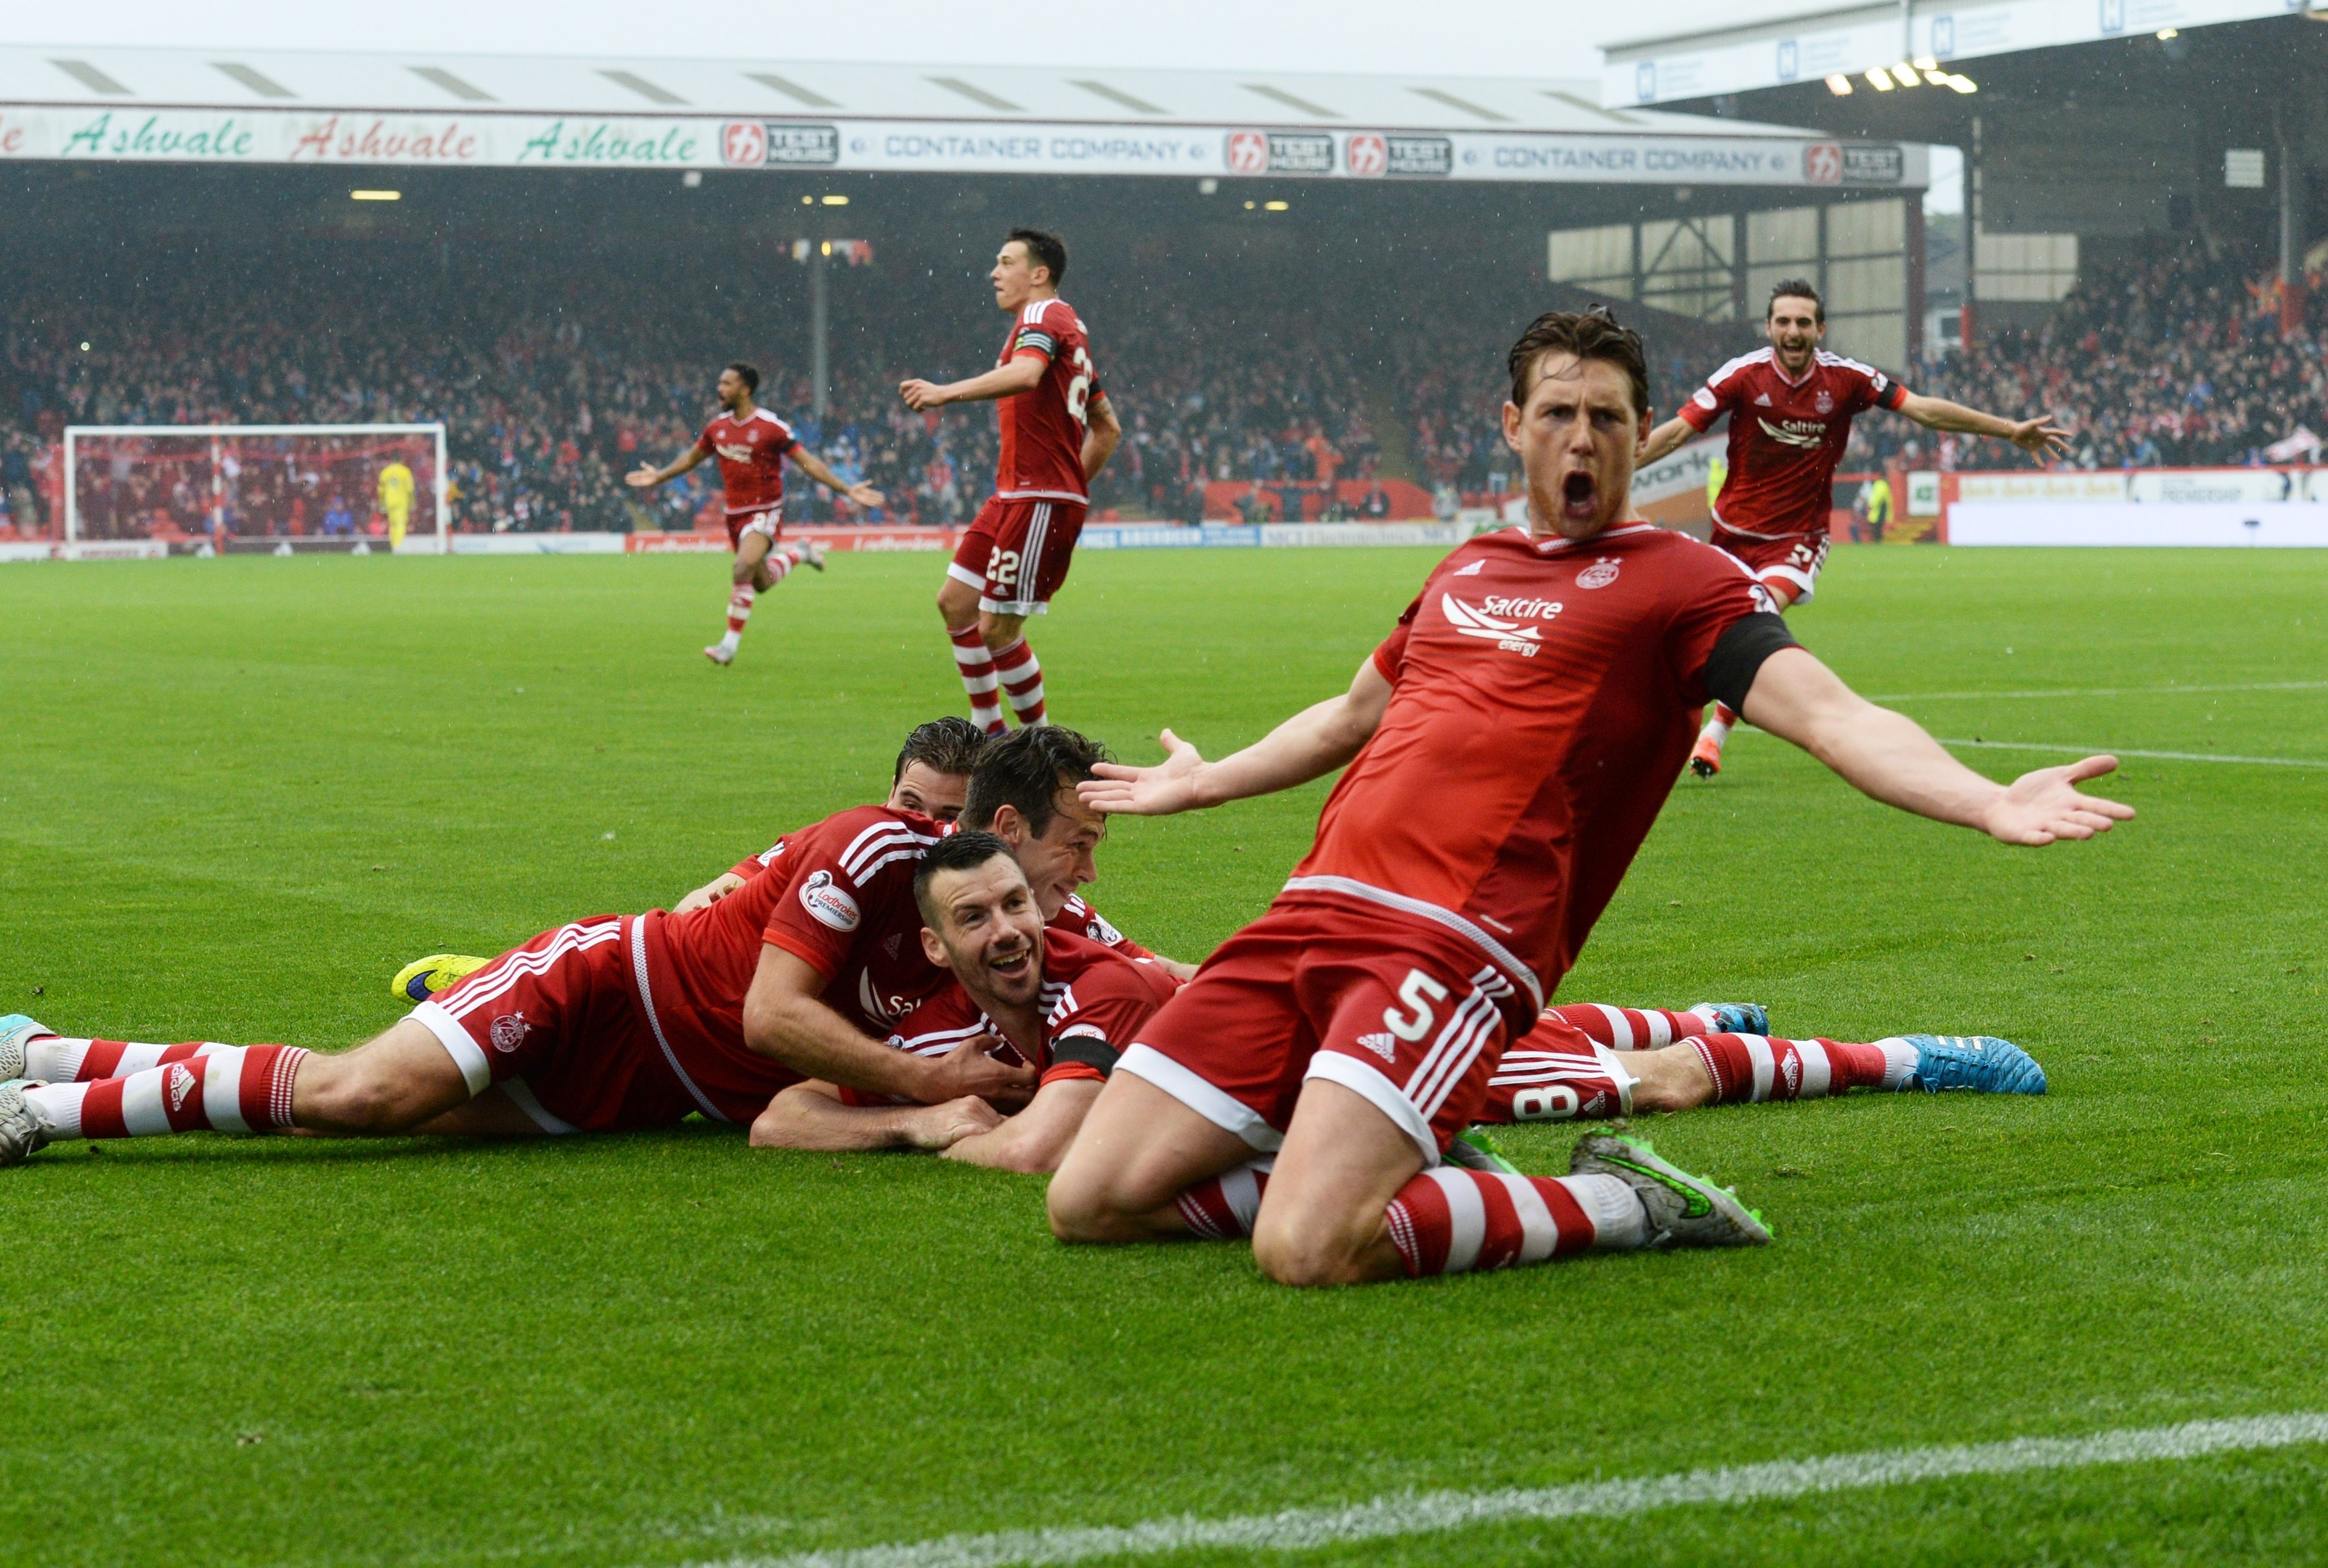 Paul Quinn's winner against Celtic on Saturday further boosted confidence levels at Pittodrie